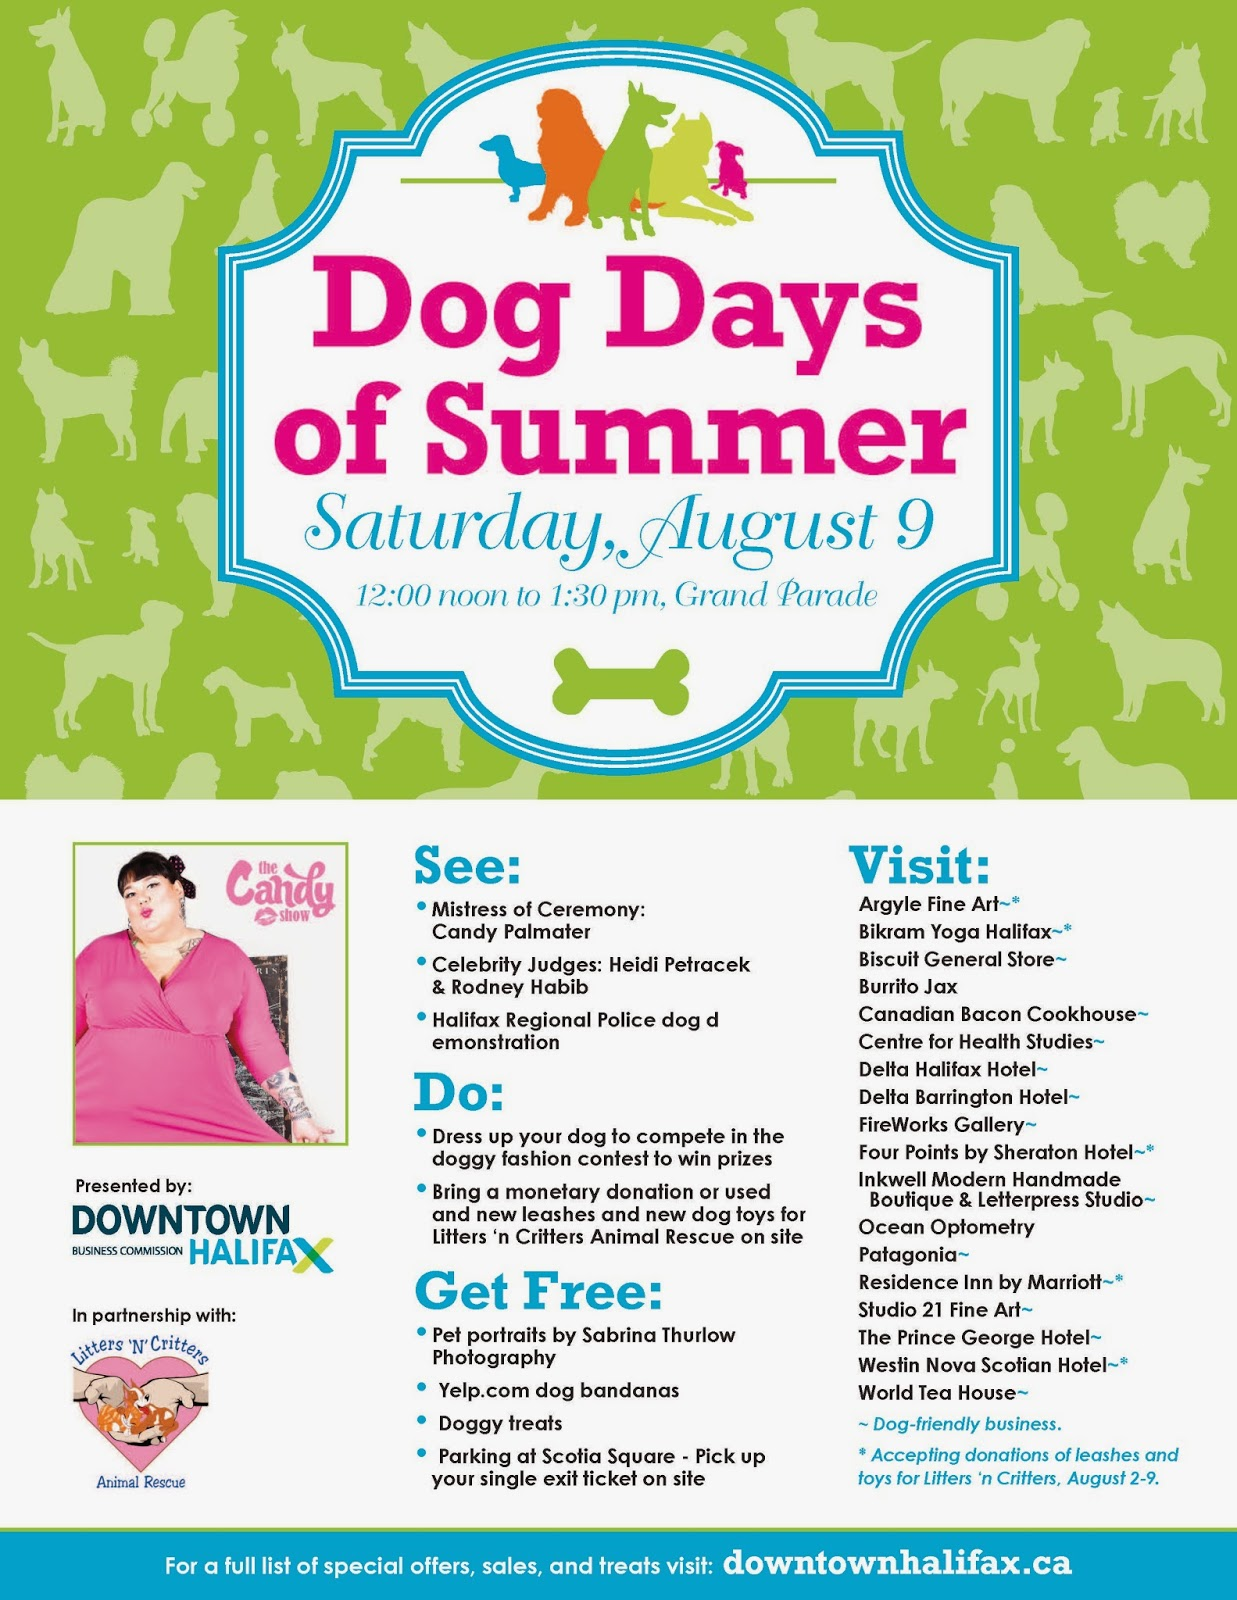 http://downtownhalifax.ca/index.php/events/dog-days-of-summer-2014/